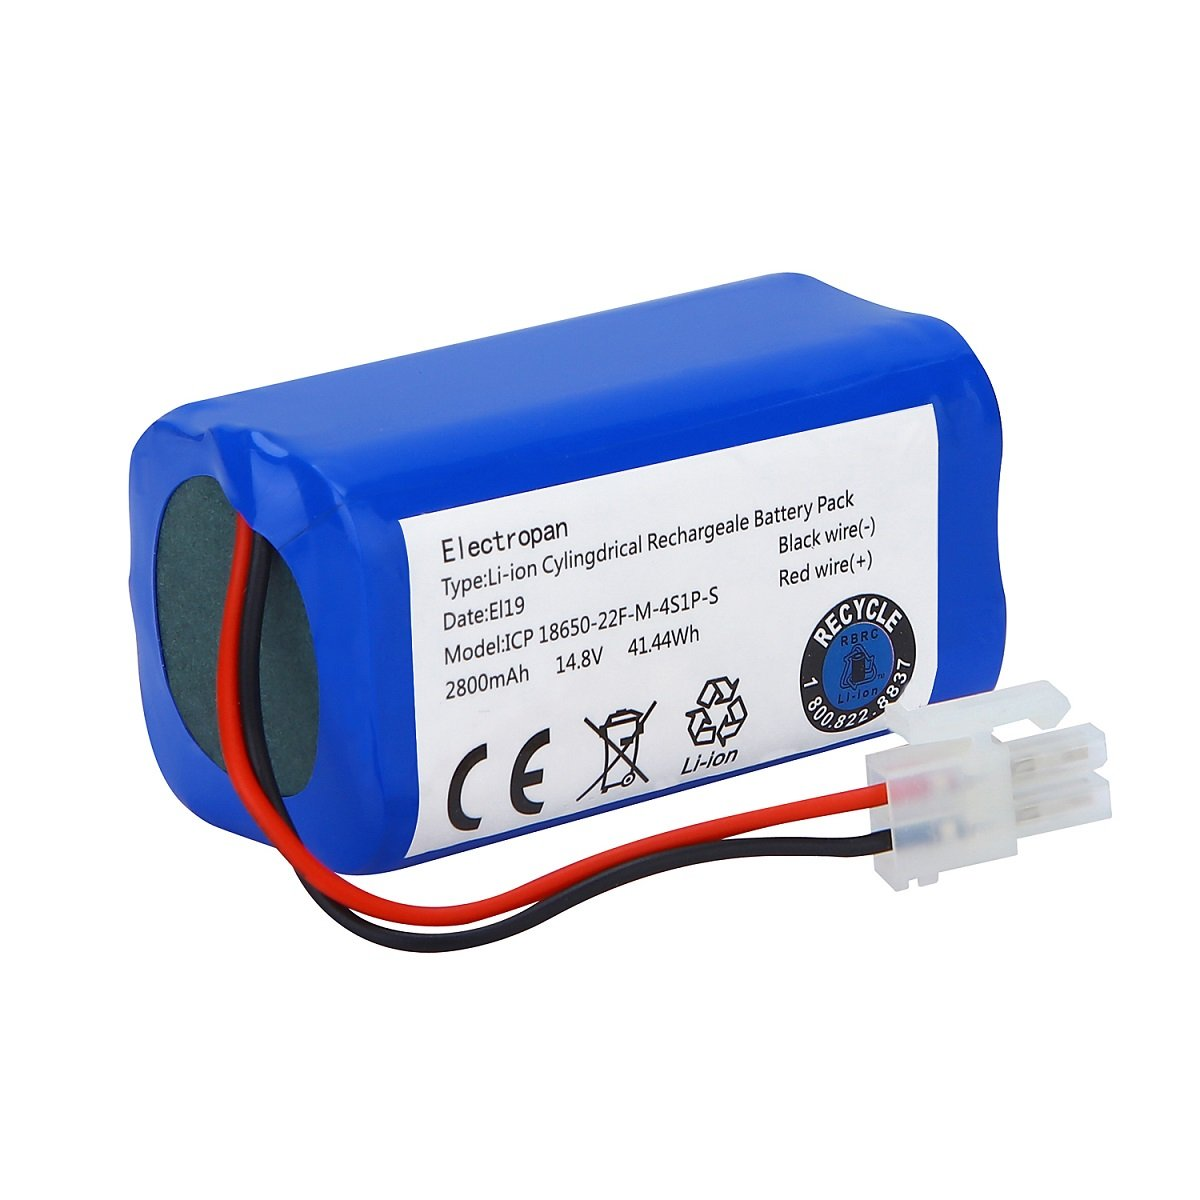 Electropan 14.8V 2800mAH Replacement Battery for ILIFE A4 A4S A6 V7 Robot Vacuum Cleaner by Electropan